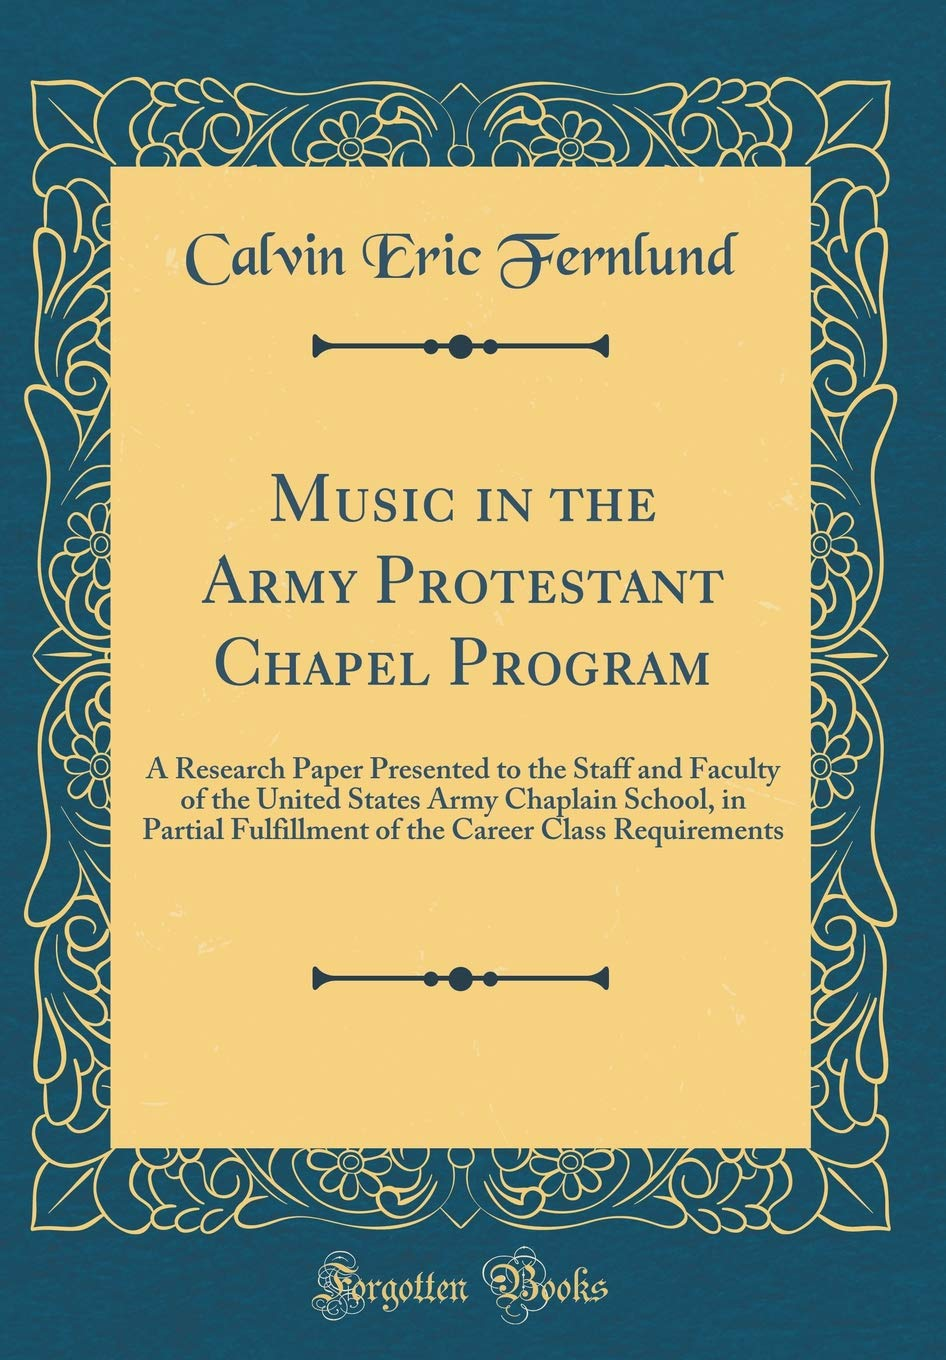 Download Music in the Army Protestant Chapel Program: A Research Paper Presented to the Staff and Faculty of the United States Army Chaplain School, in Partial ... Career Class Requirements (Classic Reprint) PDF